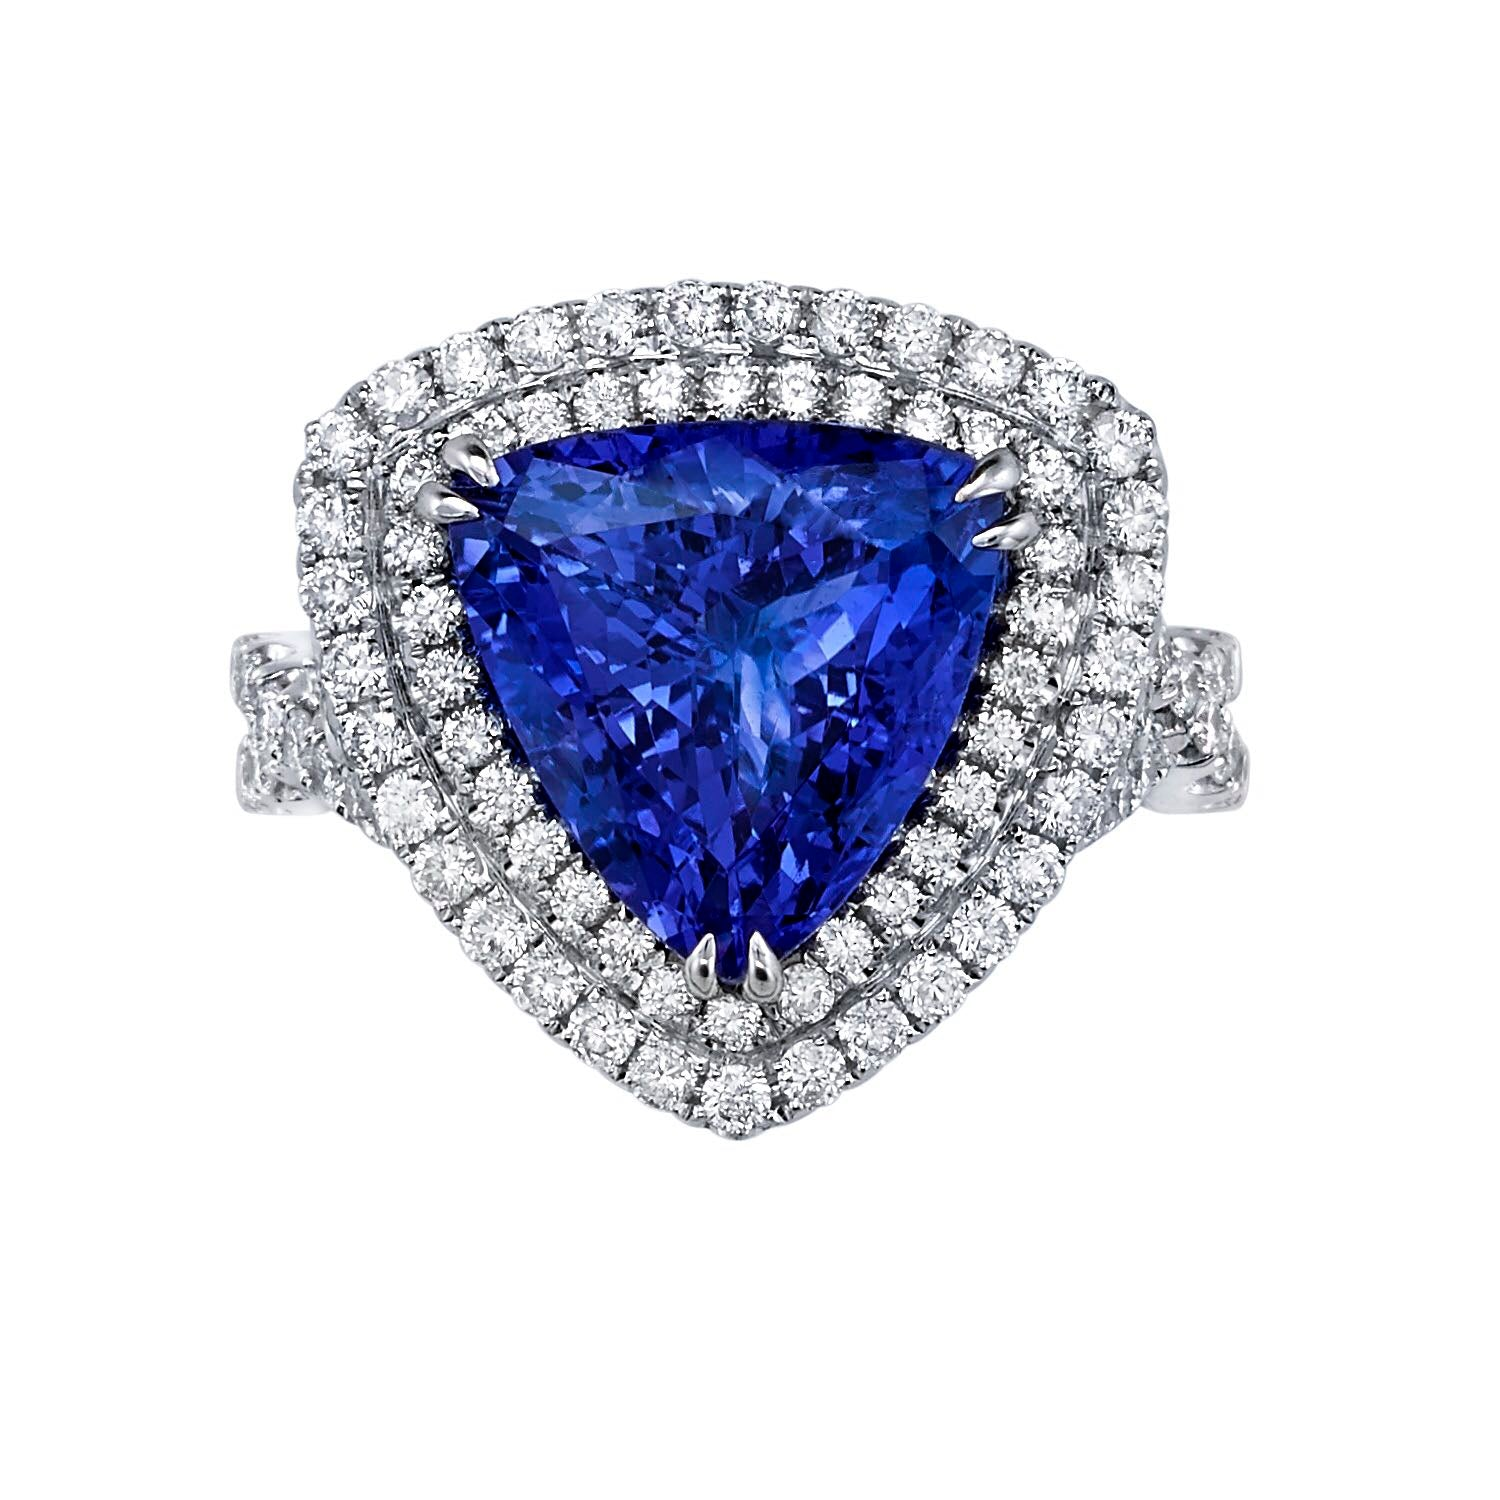 cut trillion continental portfolio items ring tanzanite jewelers description project